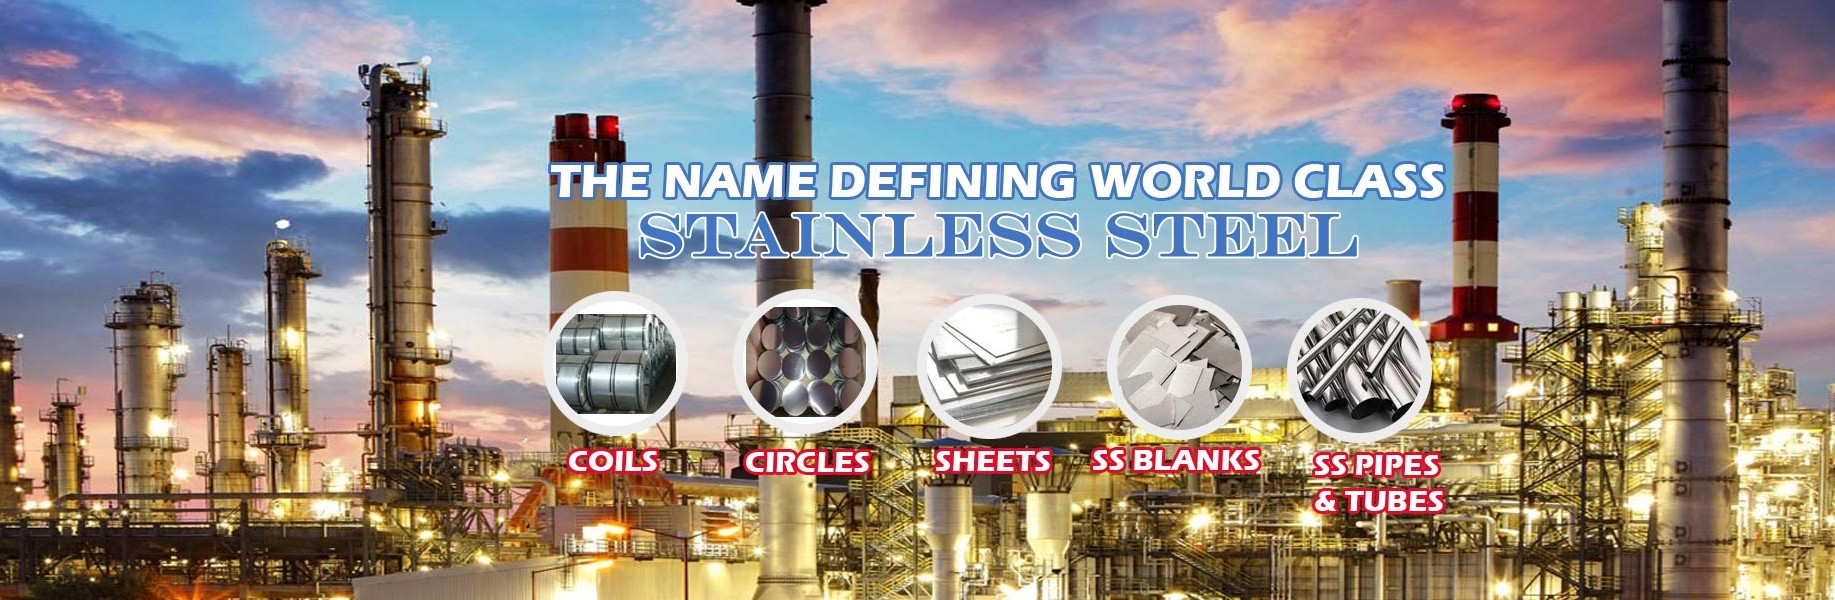 MANUFACTURERS & EXPORTERS OF COLD ROLLED STAINLESS STEEL COILS, CIRCLES, SS BLANKS, SS SHEETS, SS PIPES & TUBES